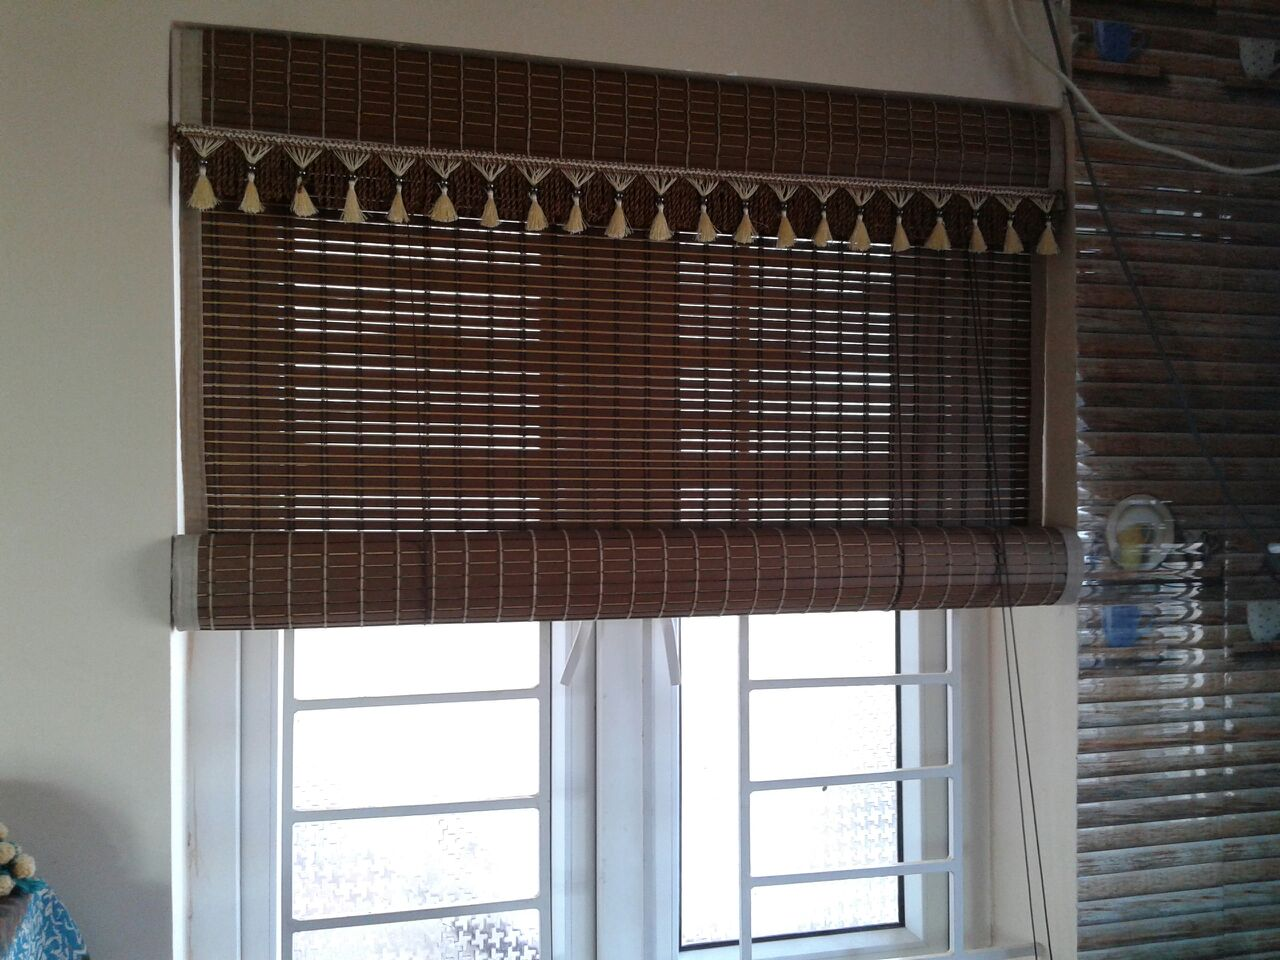 Bamboo Blinds Shops in Coimbatore | Bamboo Blinds in Coimbatore ...